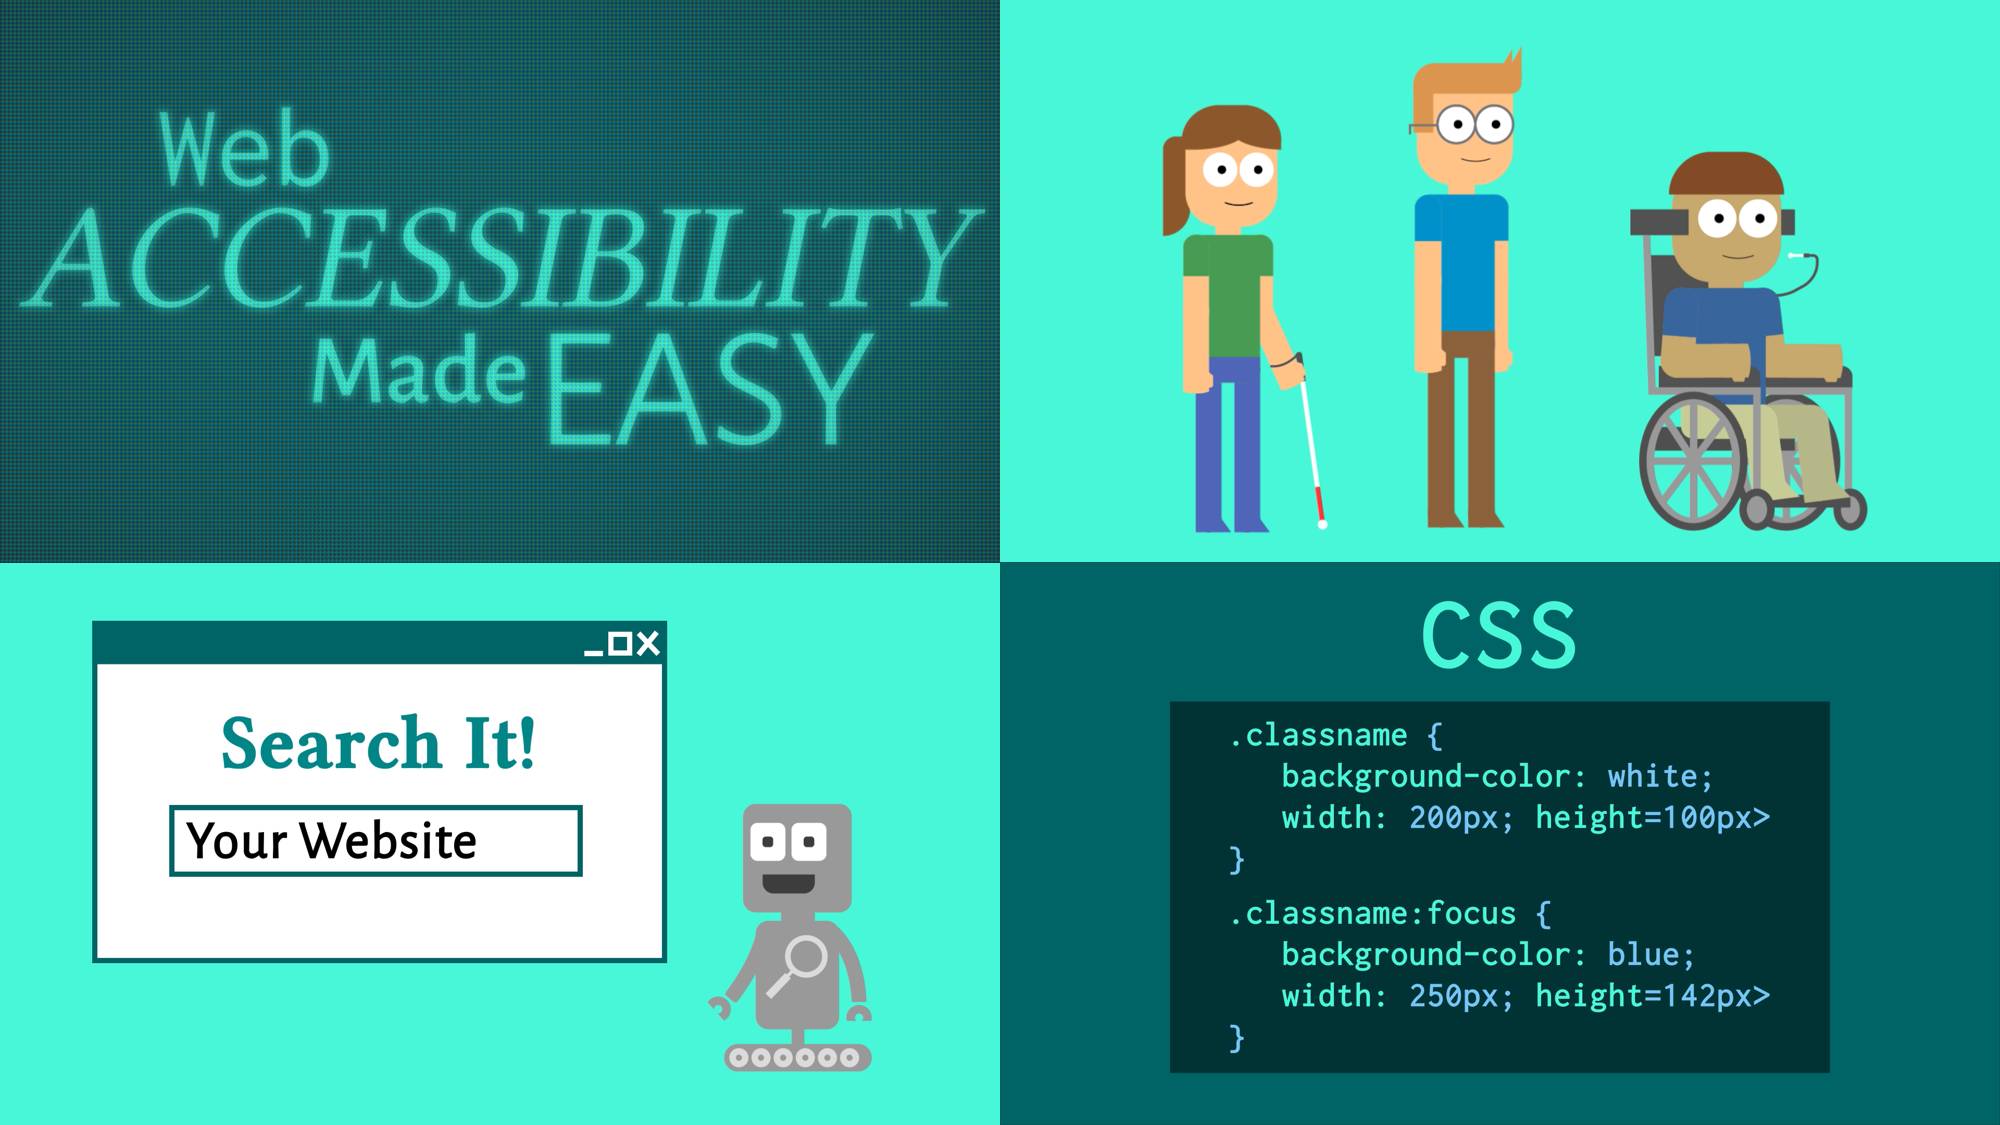 Scenes from Web Accessibility Made Easy